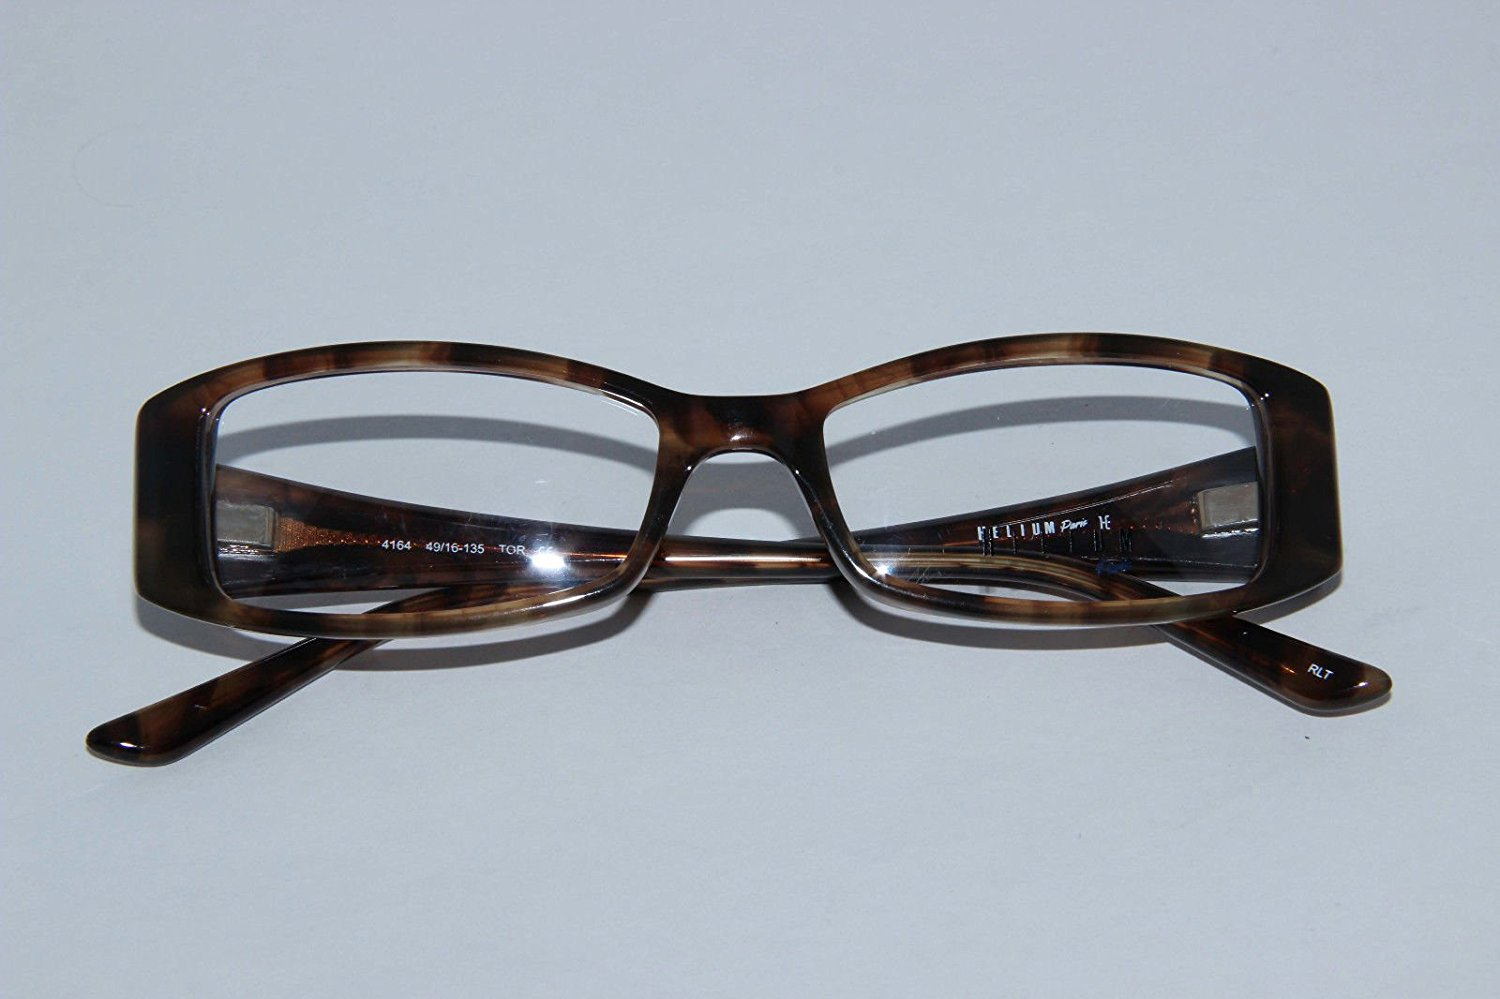 fc11f8e9f11 Get Quotations · Helium Paris Womens Eyeglasses 4164 Tortoise Optical Frame  Rhinestones